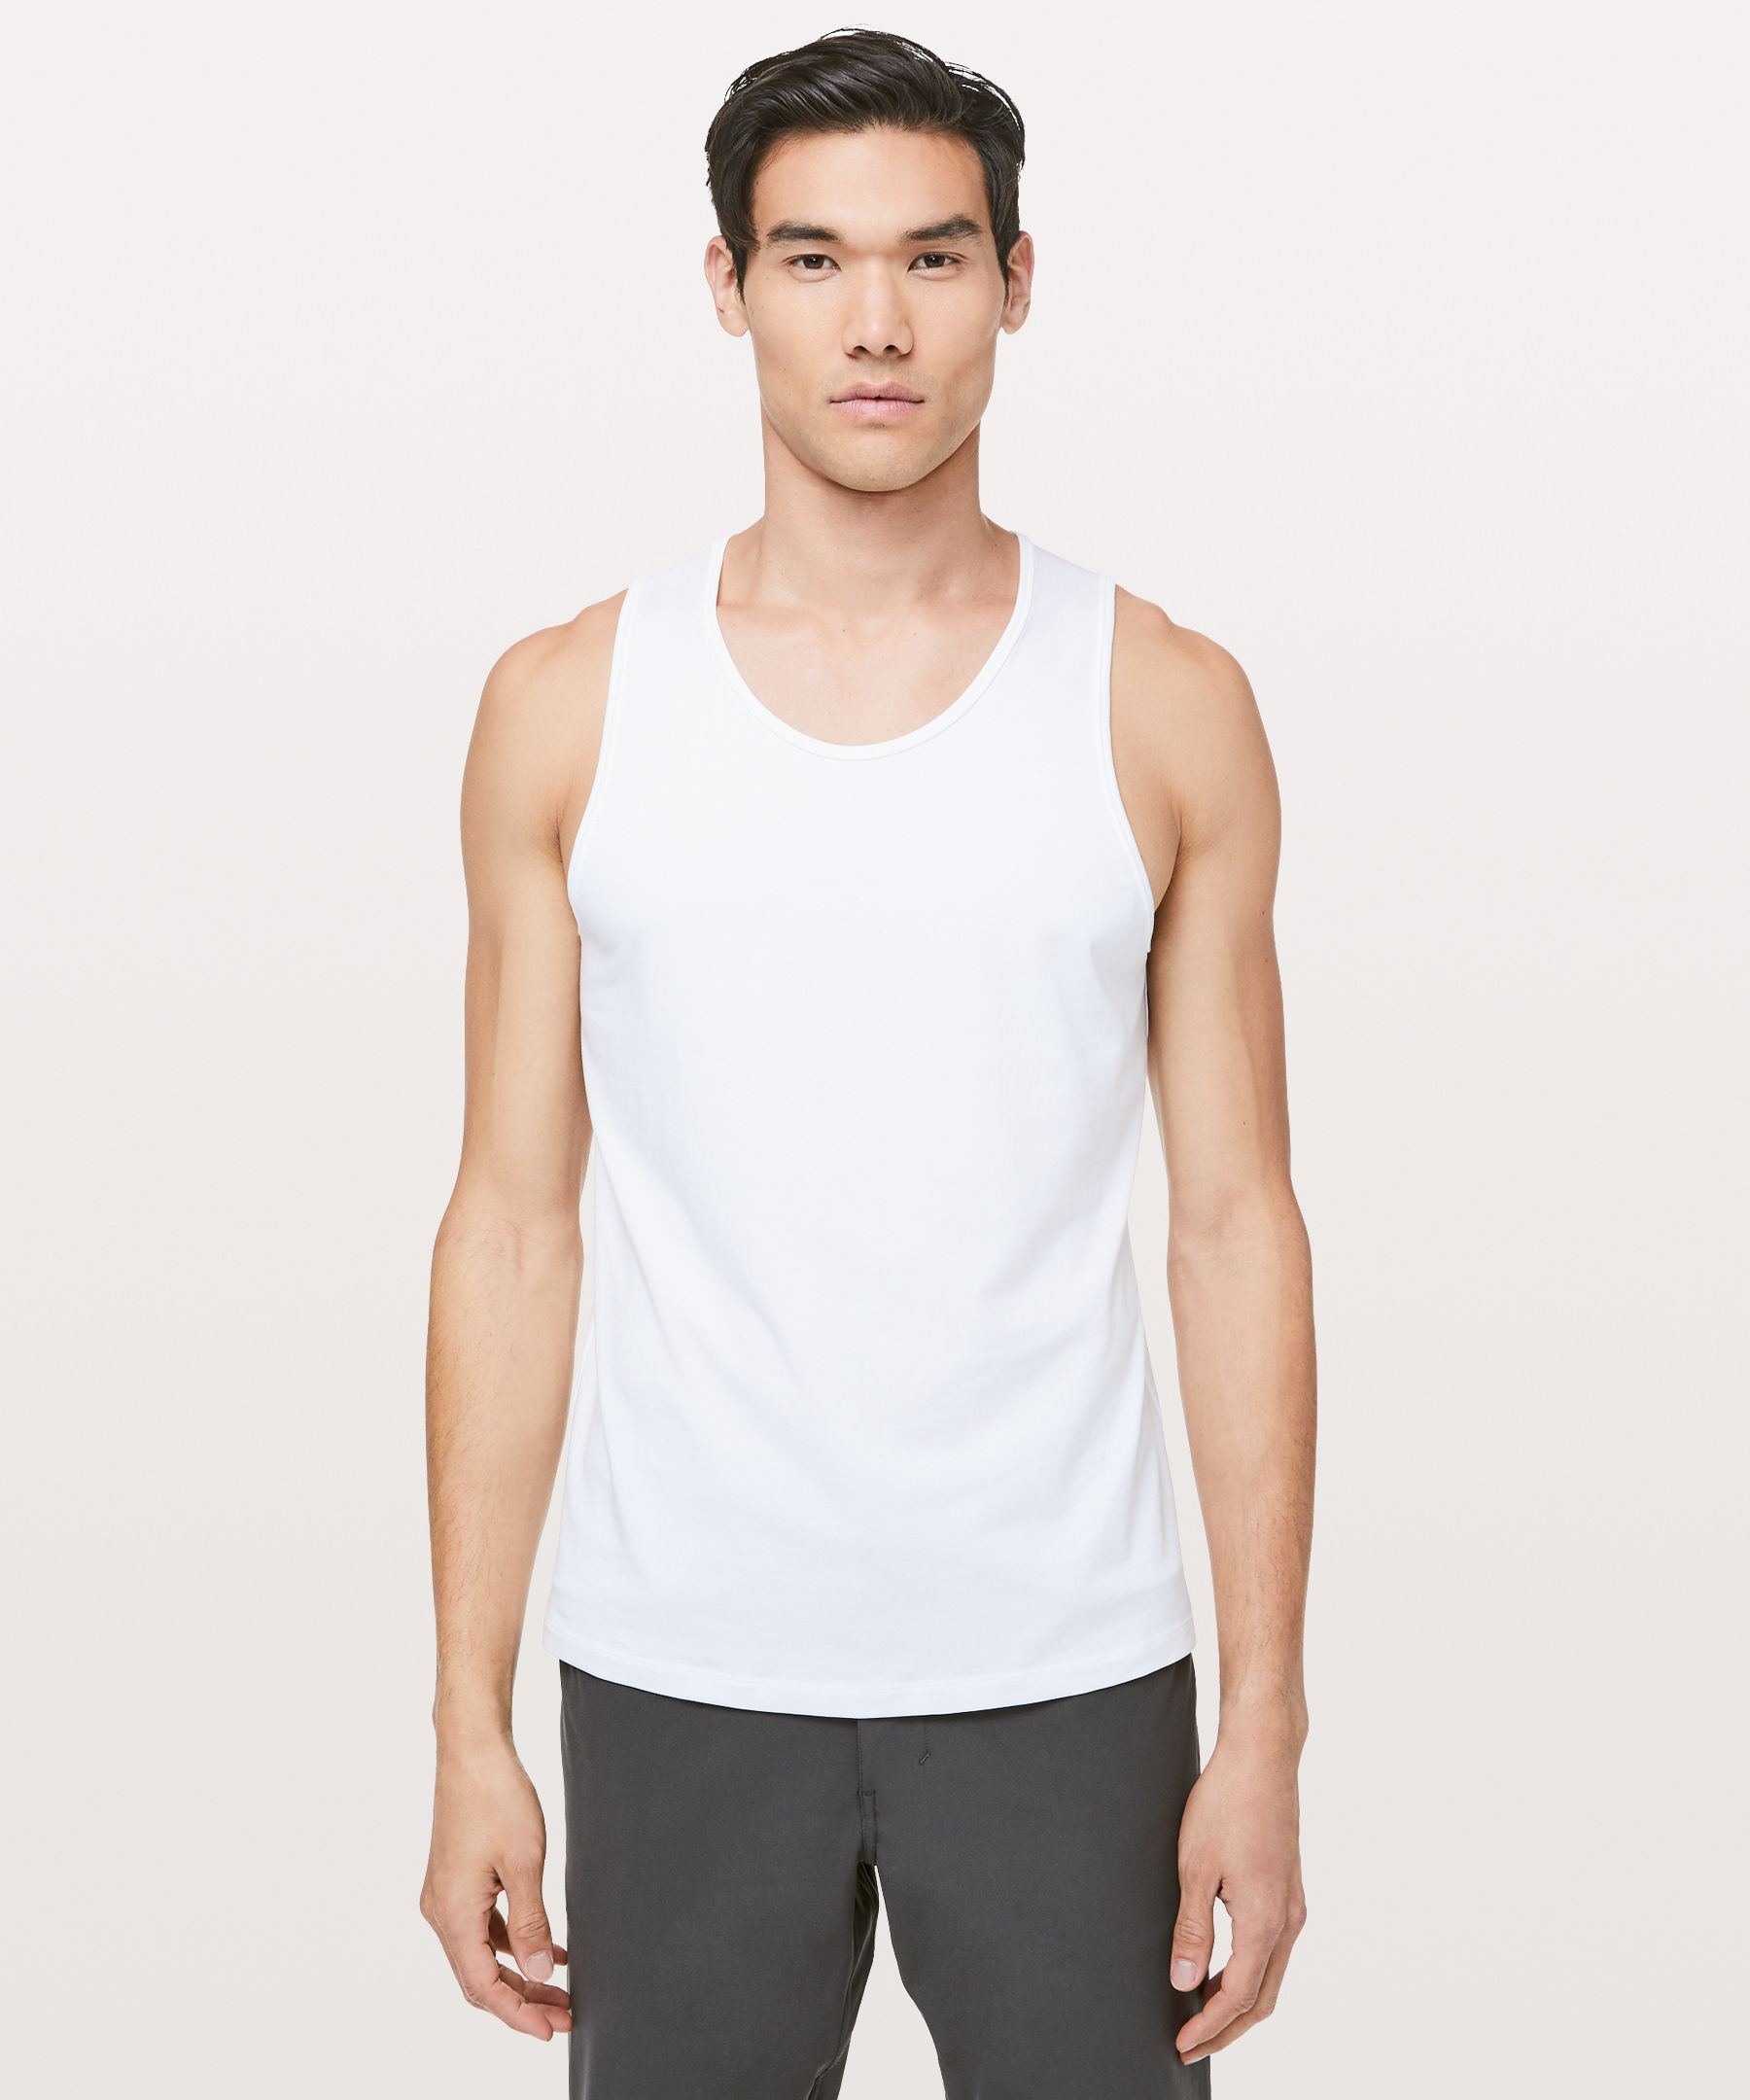 We made this versatile tank in  technical fabric that feels  natural, so you can move  through your day in comfort.